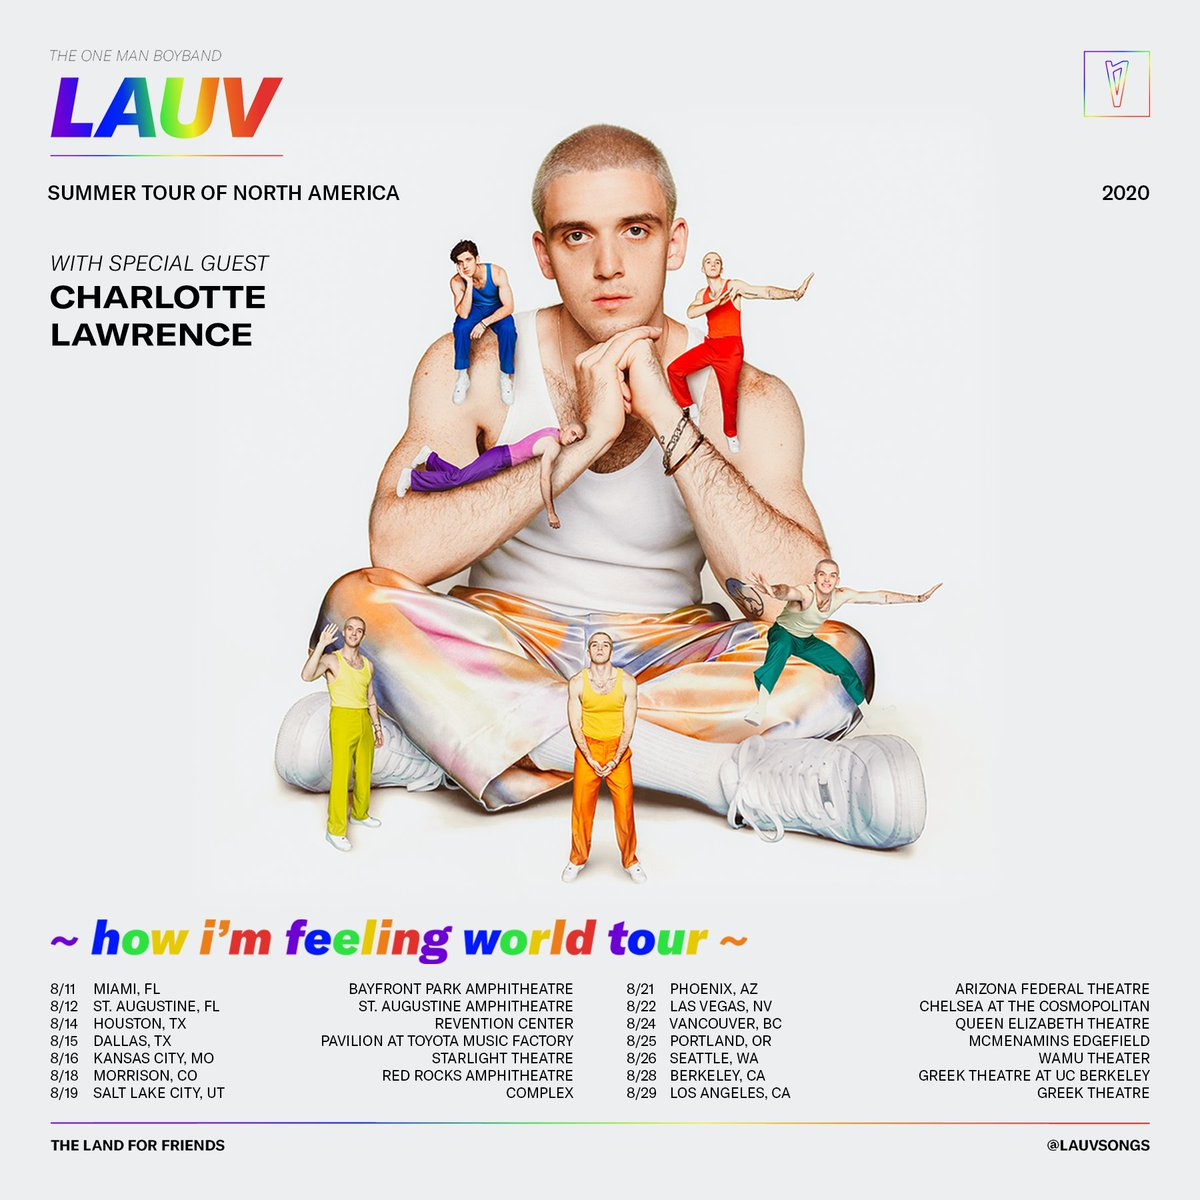 ROUND 2 BABIES LETS GOOOO🌈so excited to be joining @lauvsongs